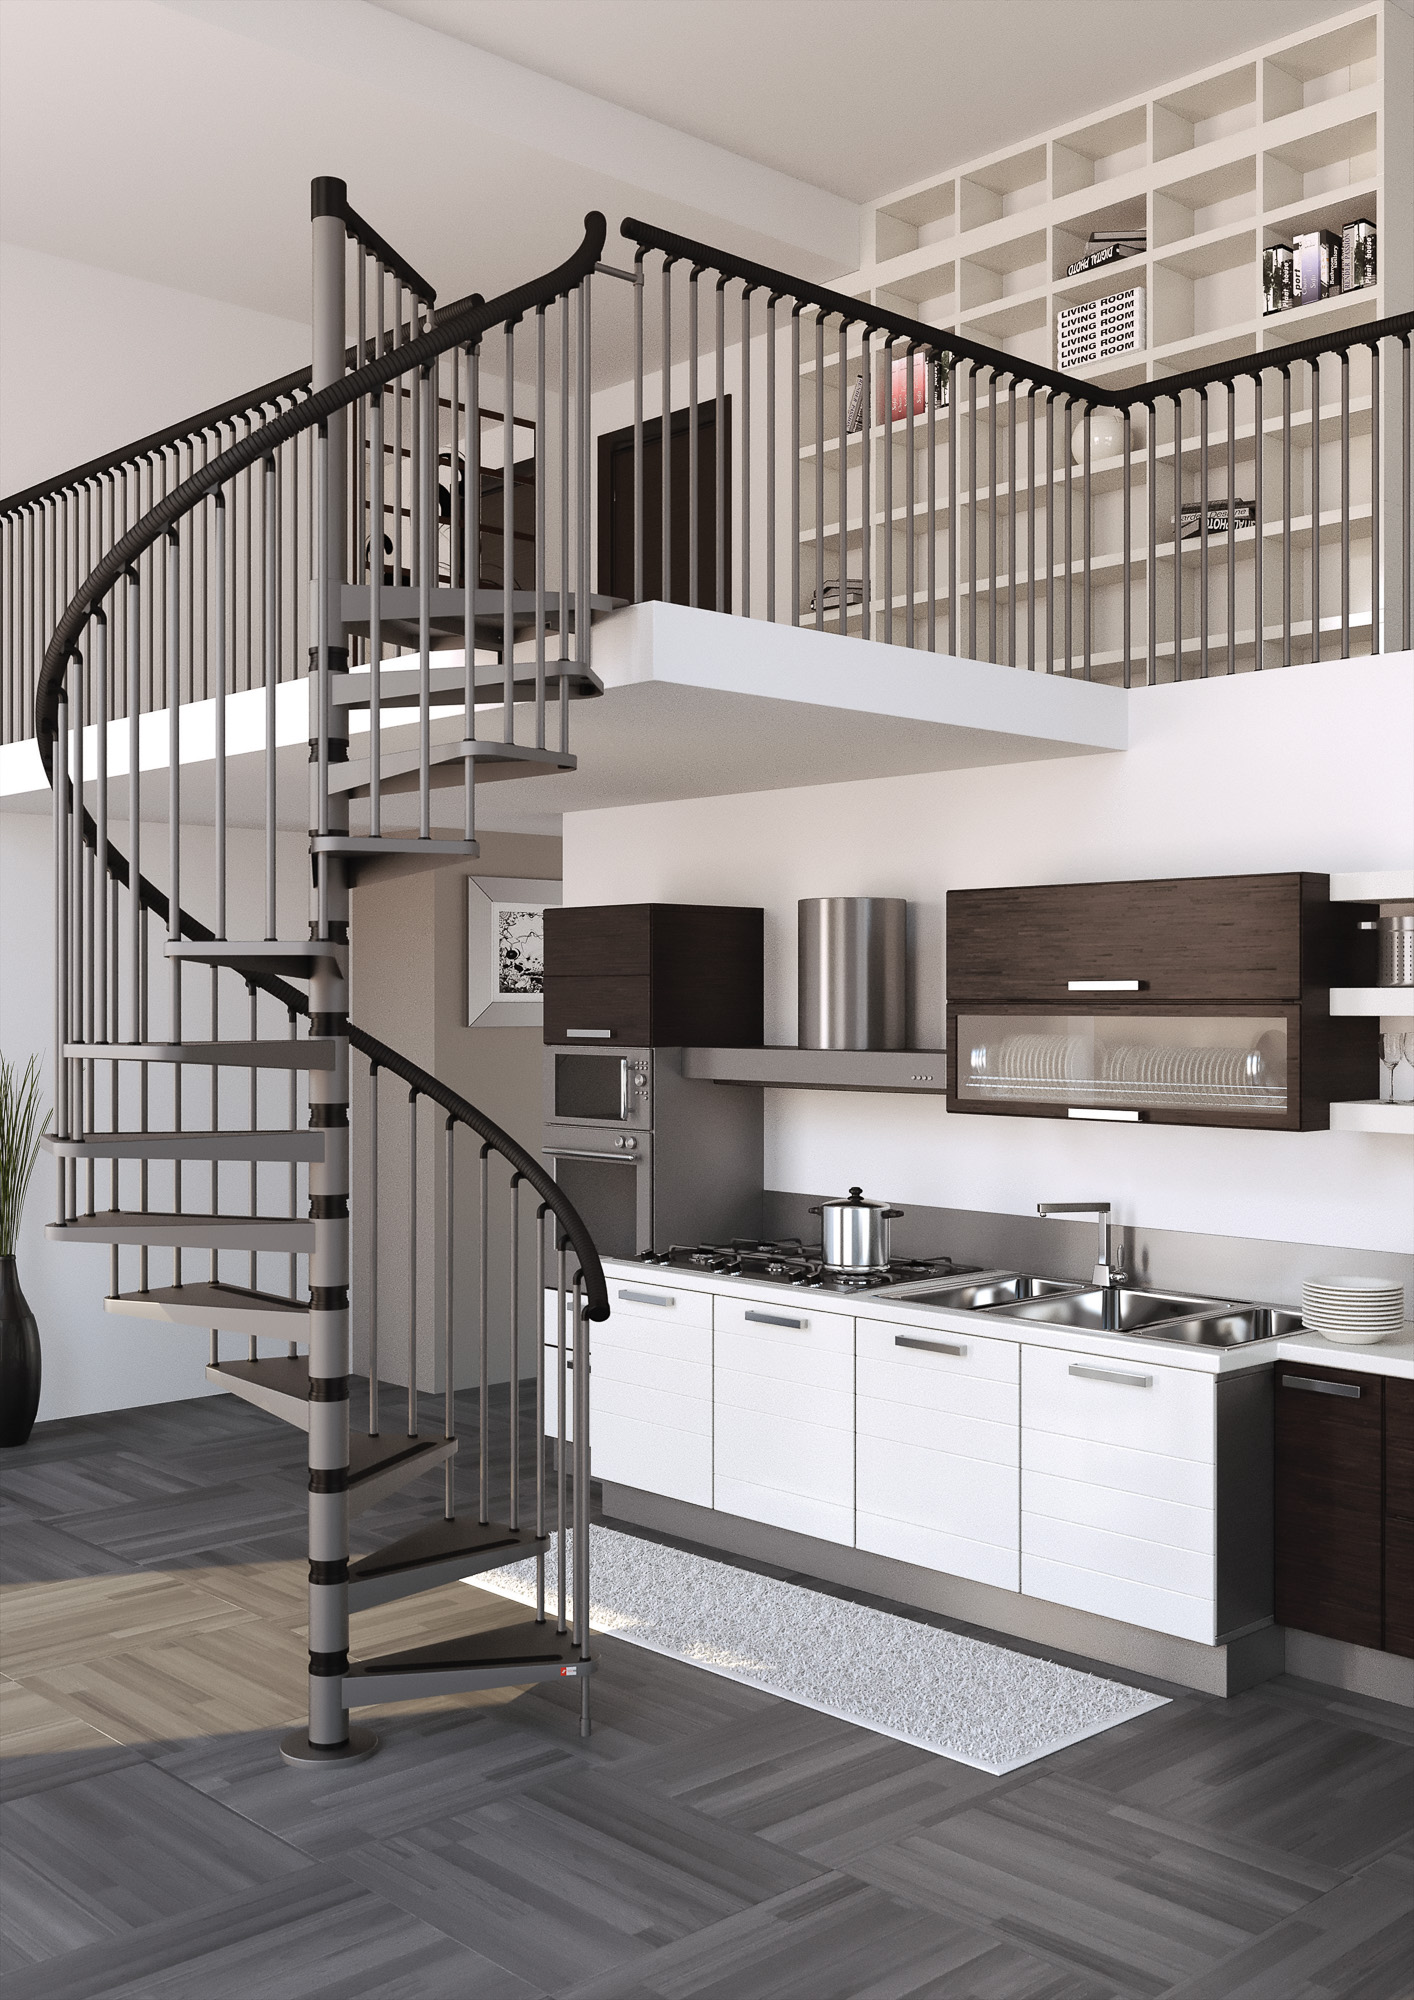 misterstep gamia metal spiral staircase diy stair kit 3. Black Bedroom Furniture Sets. Home Design Ideas